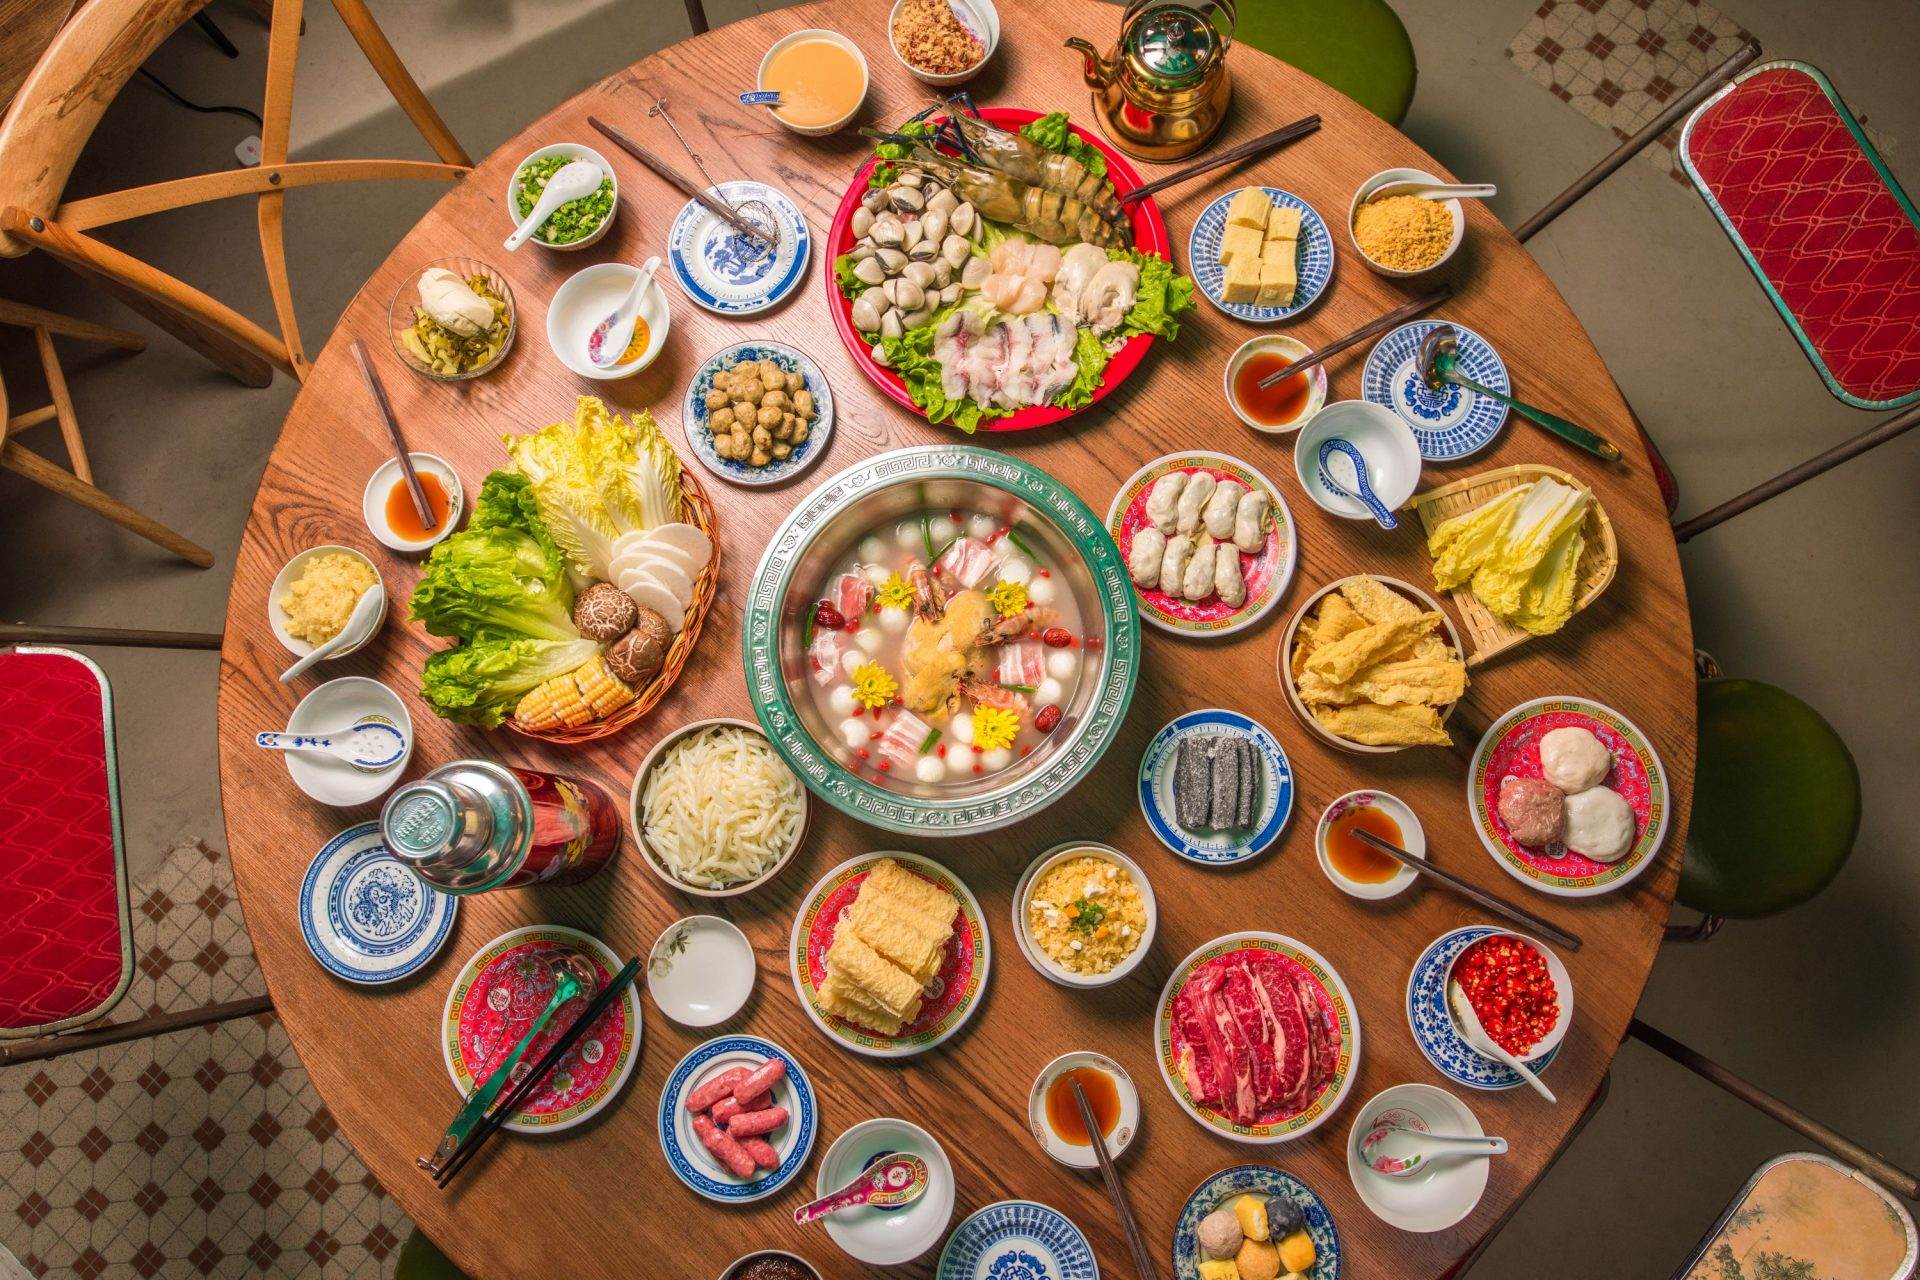 Warm up this winter at one of these 10 quirky hotpot restaurants